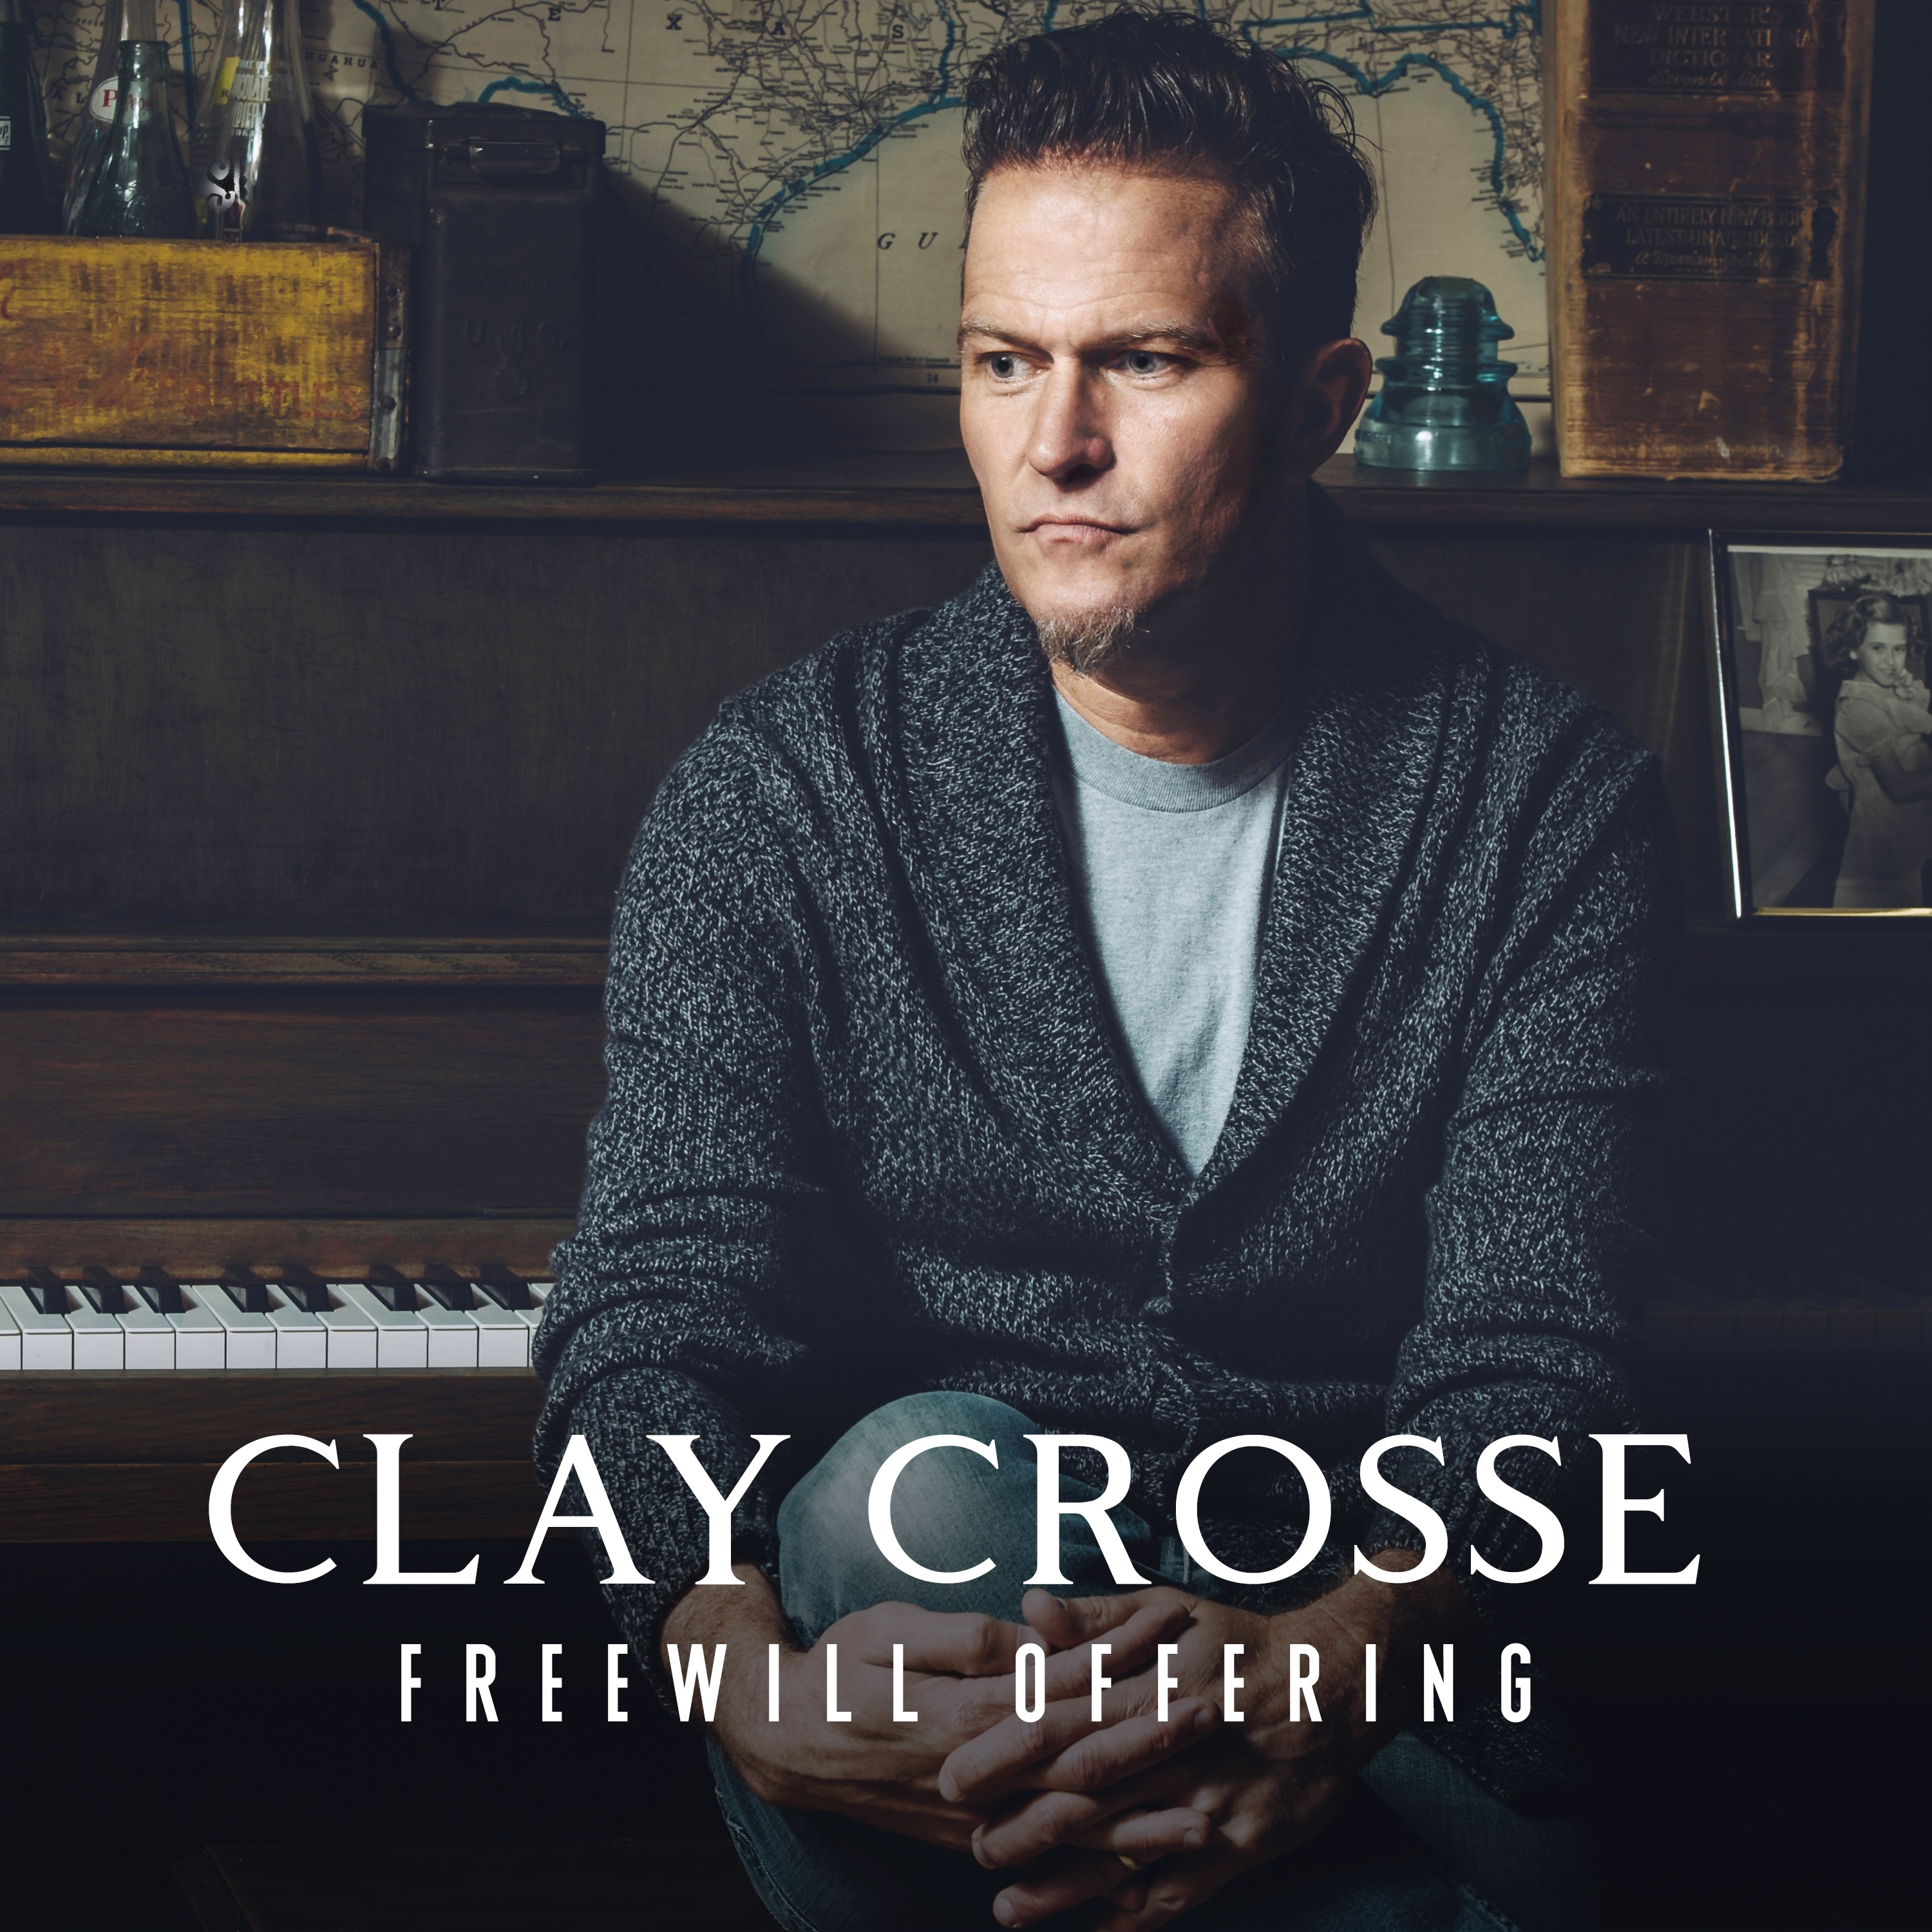 CLAY CROSSE RELEASES NEW EP, 'FREEWILL OFFERING'